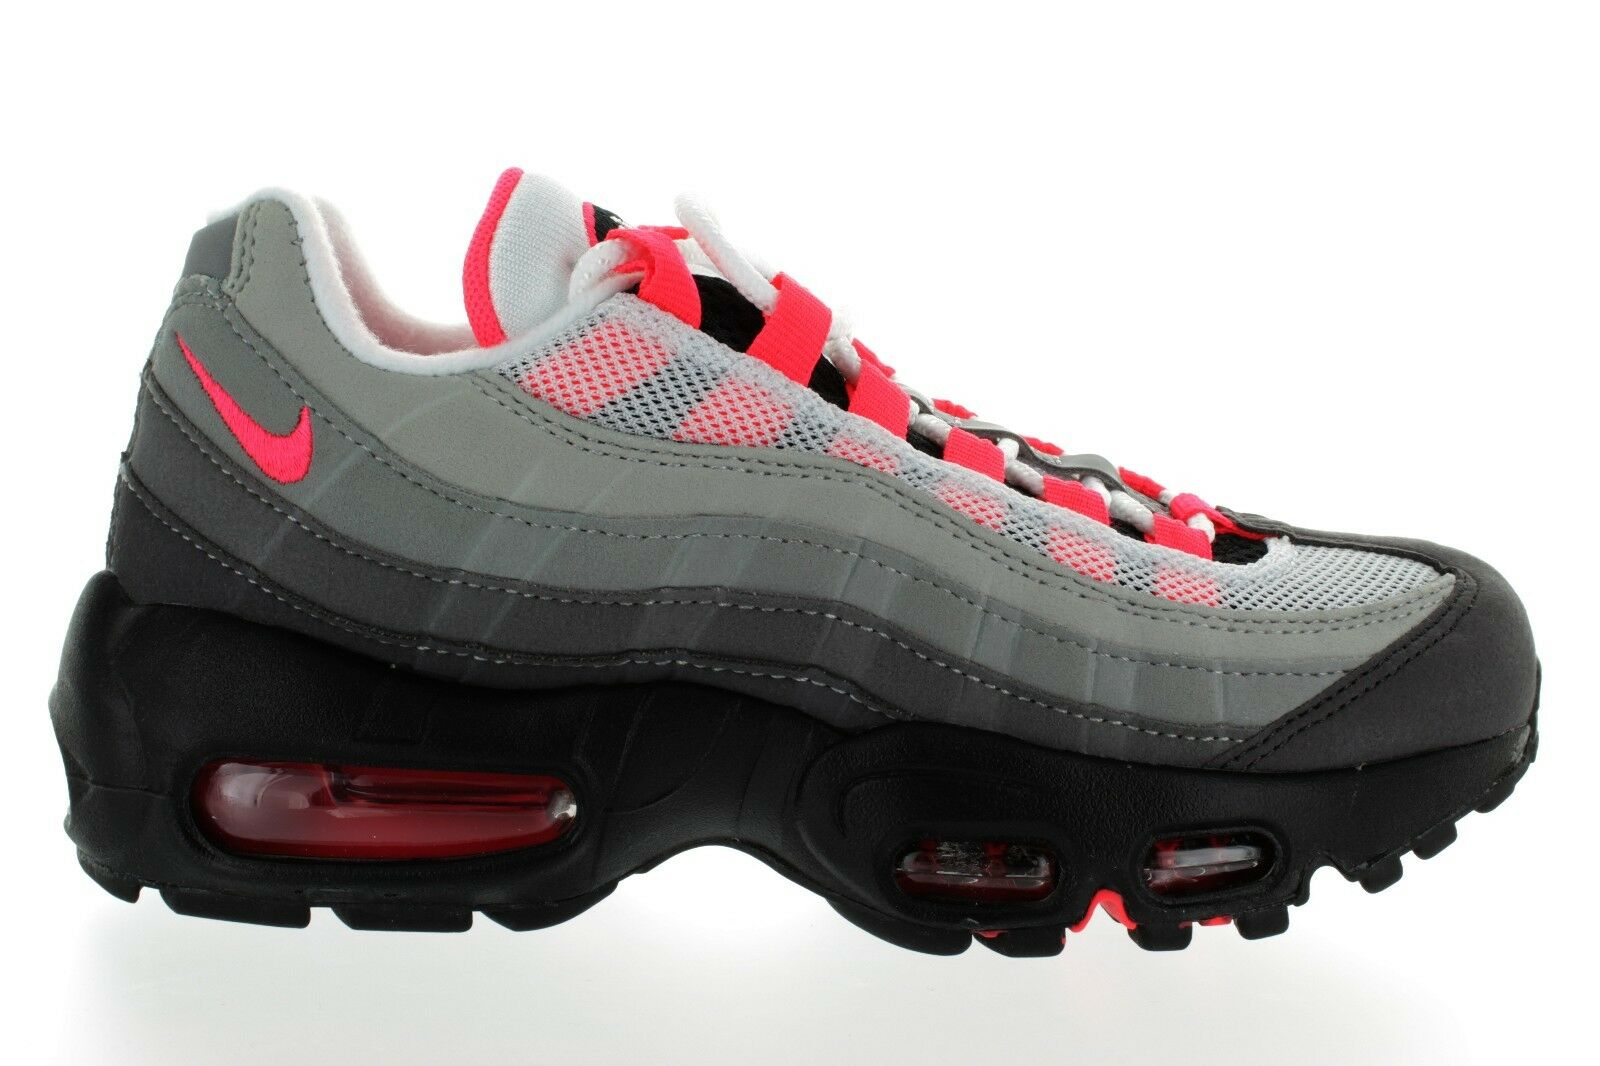 2018 MENS NIKE AIR MAX'95 OG AT2865 100 WHT/SOLAR DS RED-GRANITE DUST DS WHT/SOLAR BRAND NEW fb2a3d